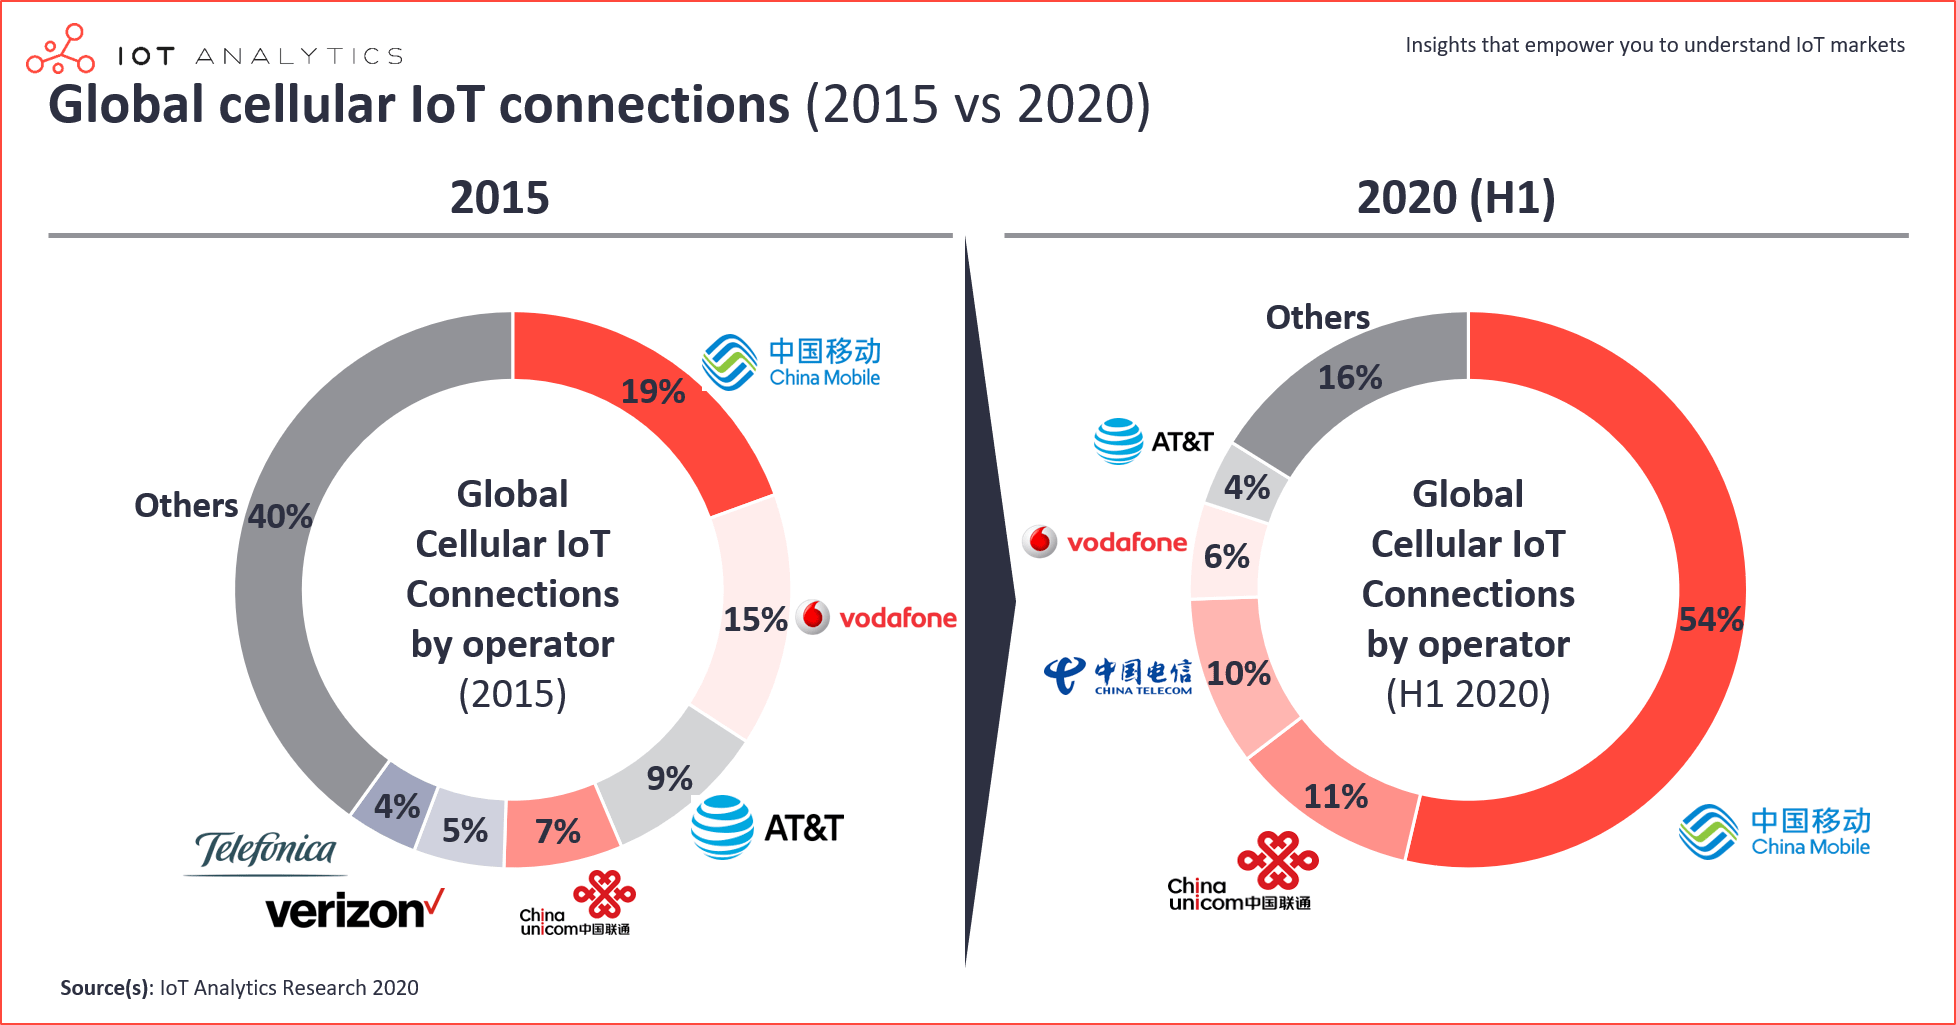 IoT Connections - Global cellular IoT connections